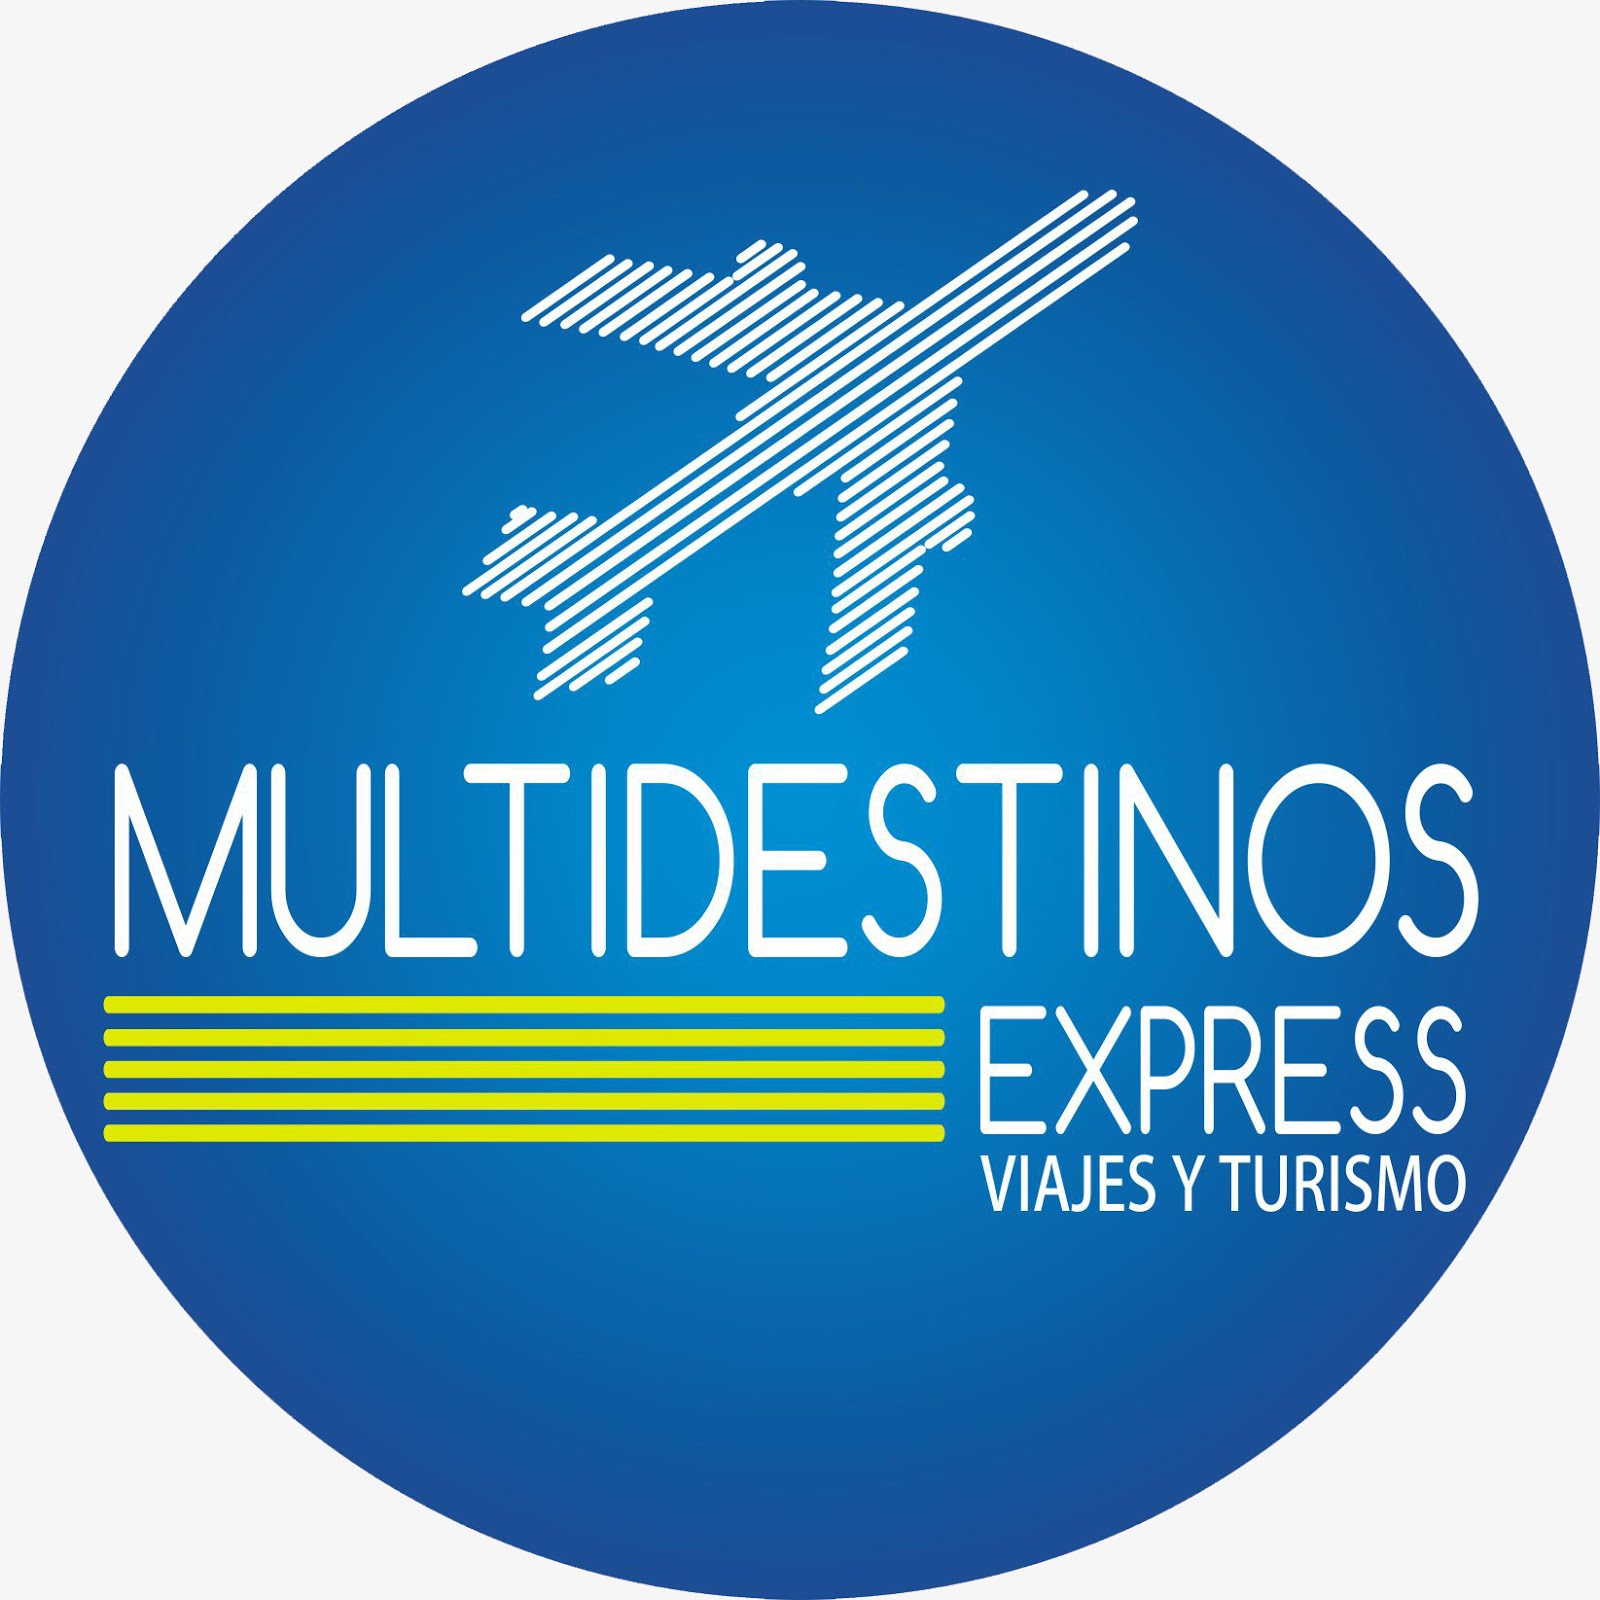 Multidestinos Express